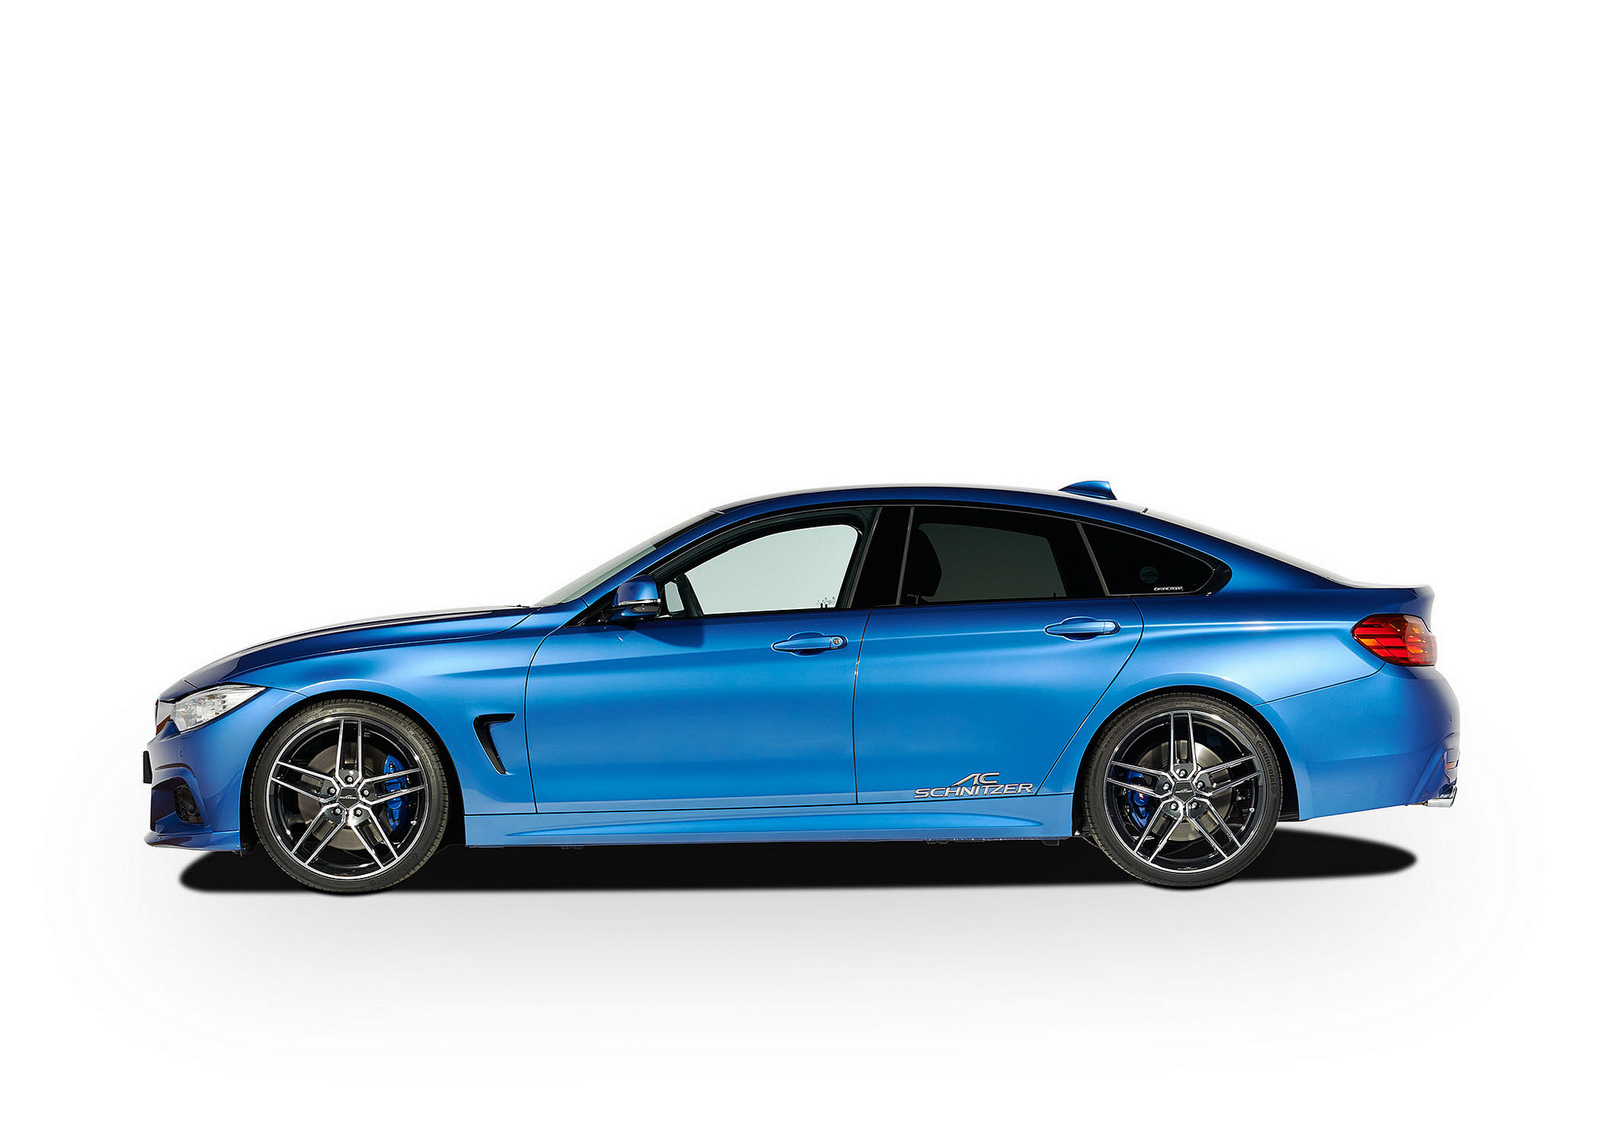 Bmw 435i Gran Coupe >> AC Schnitzer Launches Tuning Pack for BMW 4 Series Gran Coupe Range - autoevolution